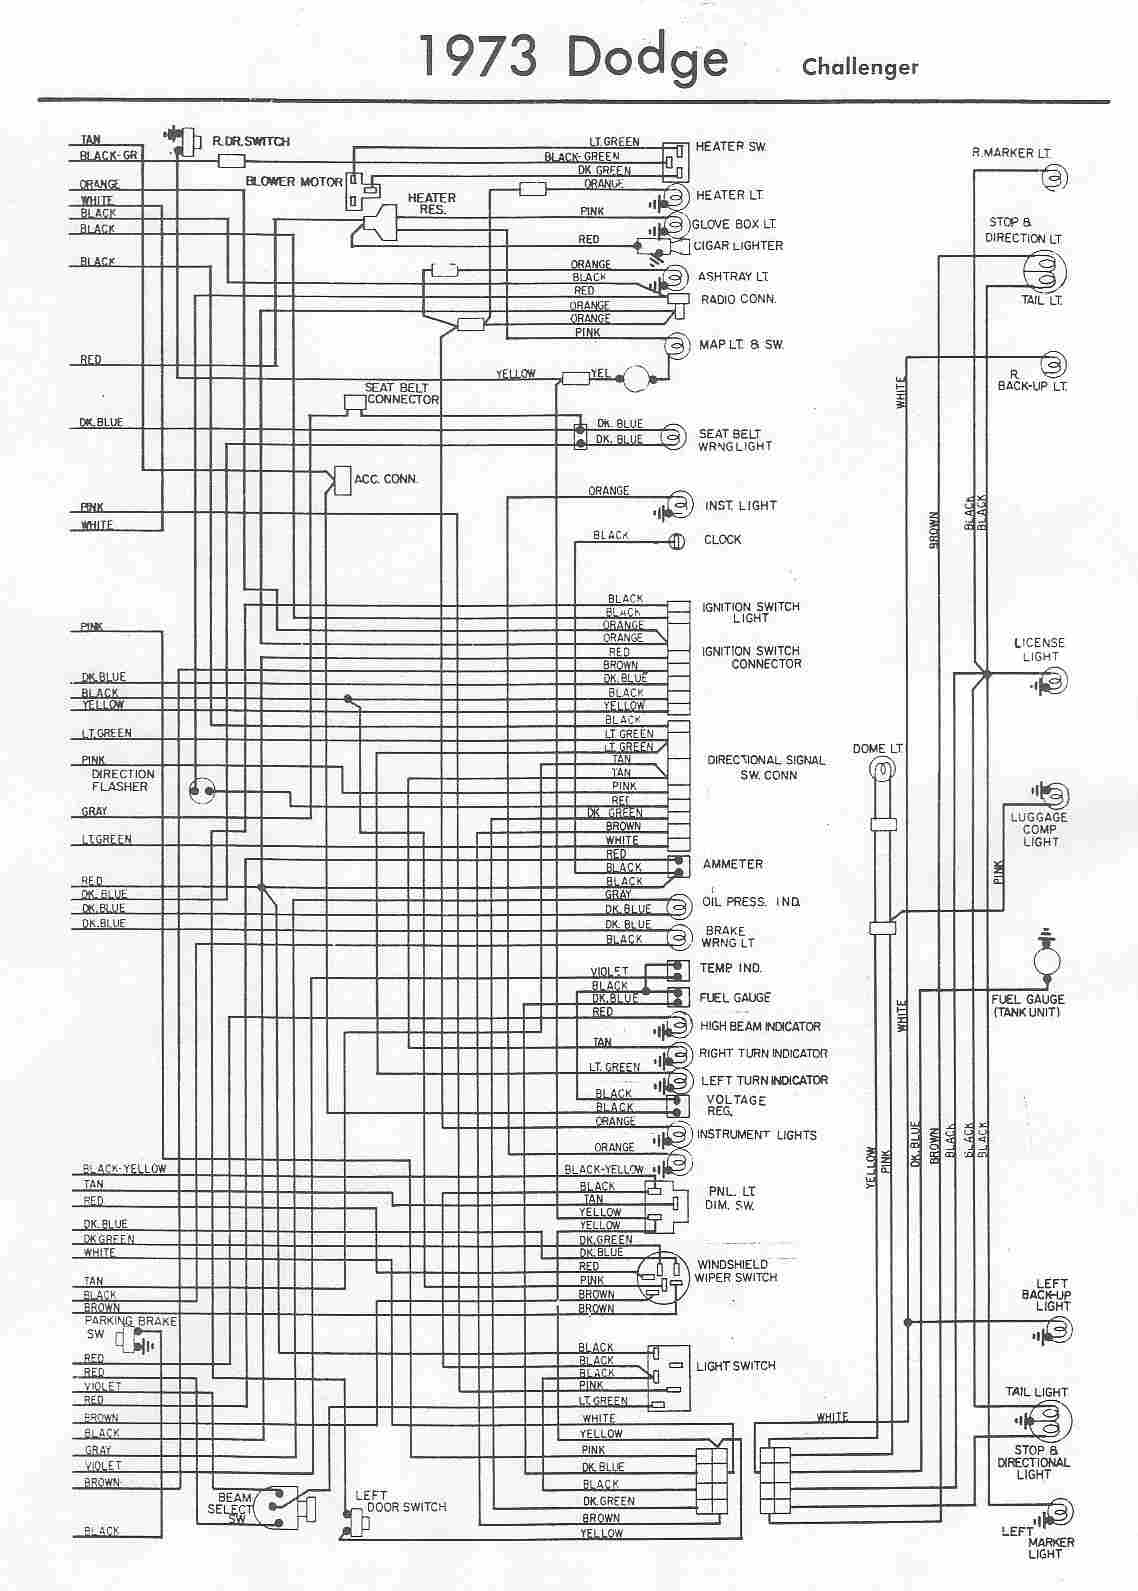 Dodge Car Manuals Wiring Diagrams Pdf Fault Codes 1978 Aspen Diagram Electrical Of 1973 Challenger